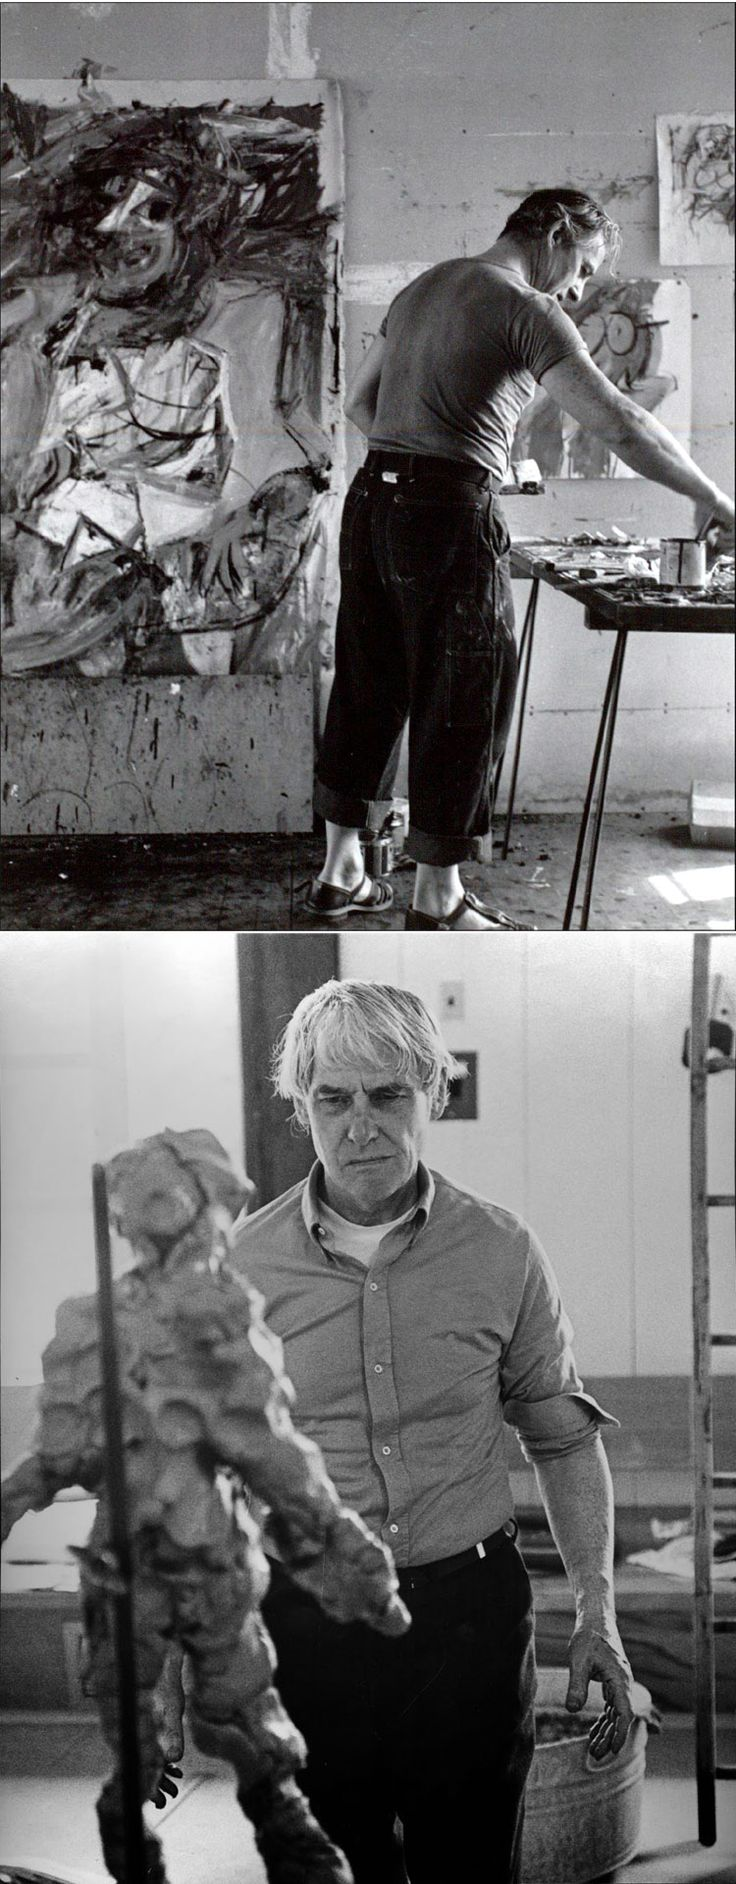 Willem de Kooning - Artist 20th c. - At Work.